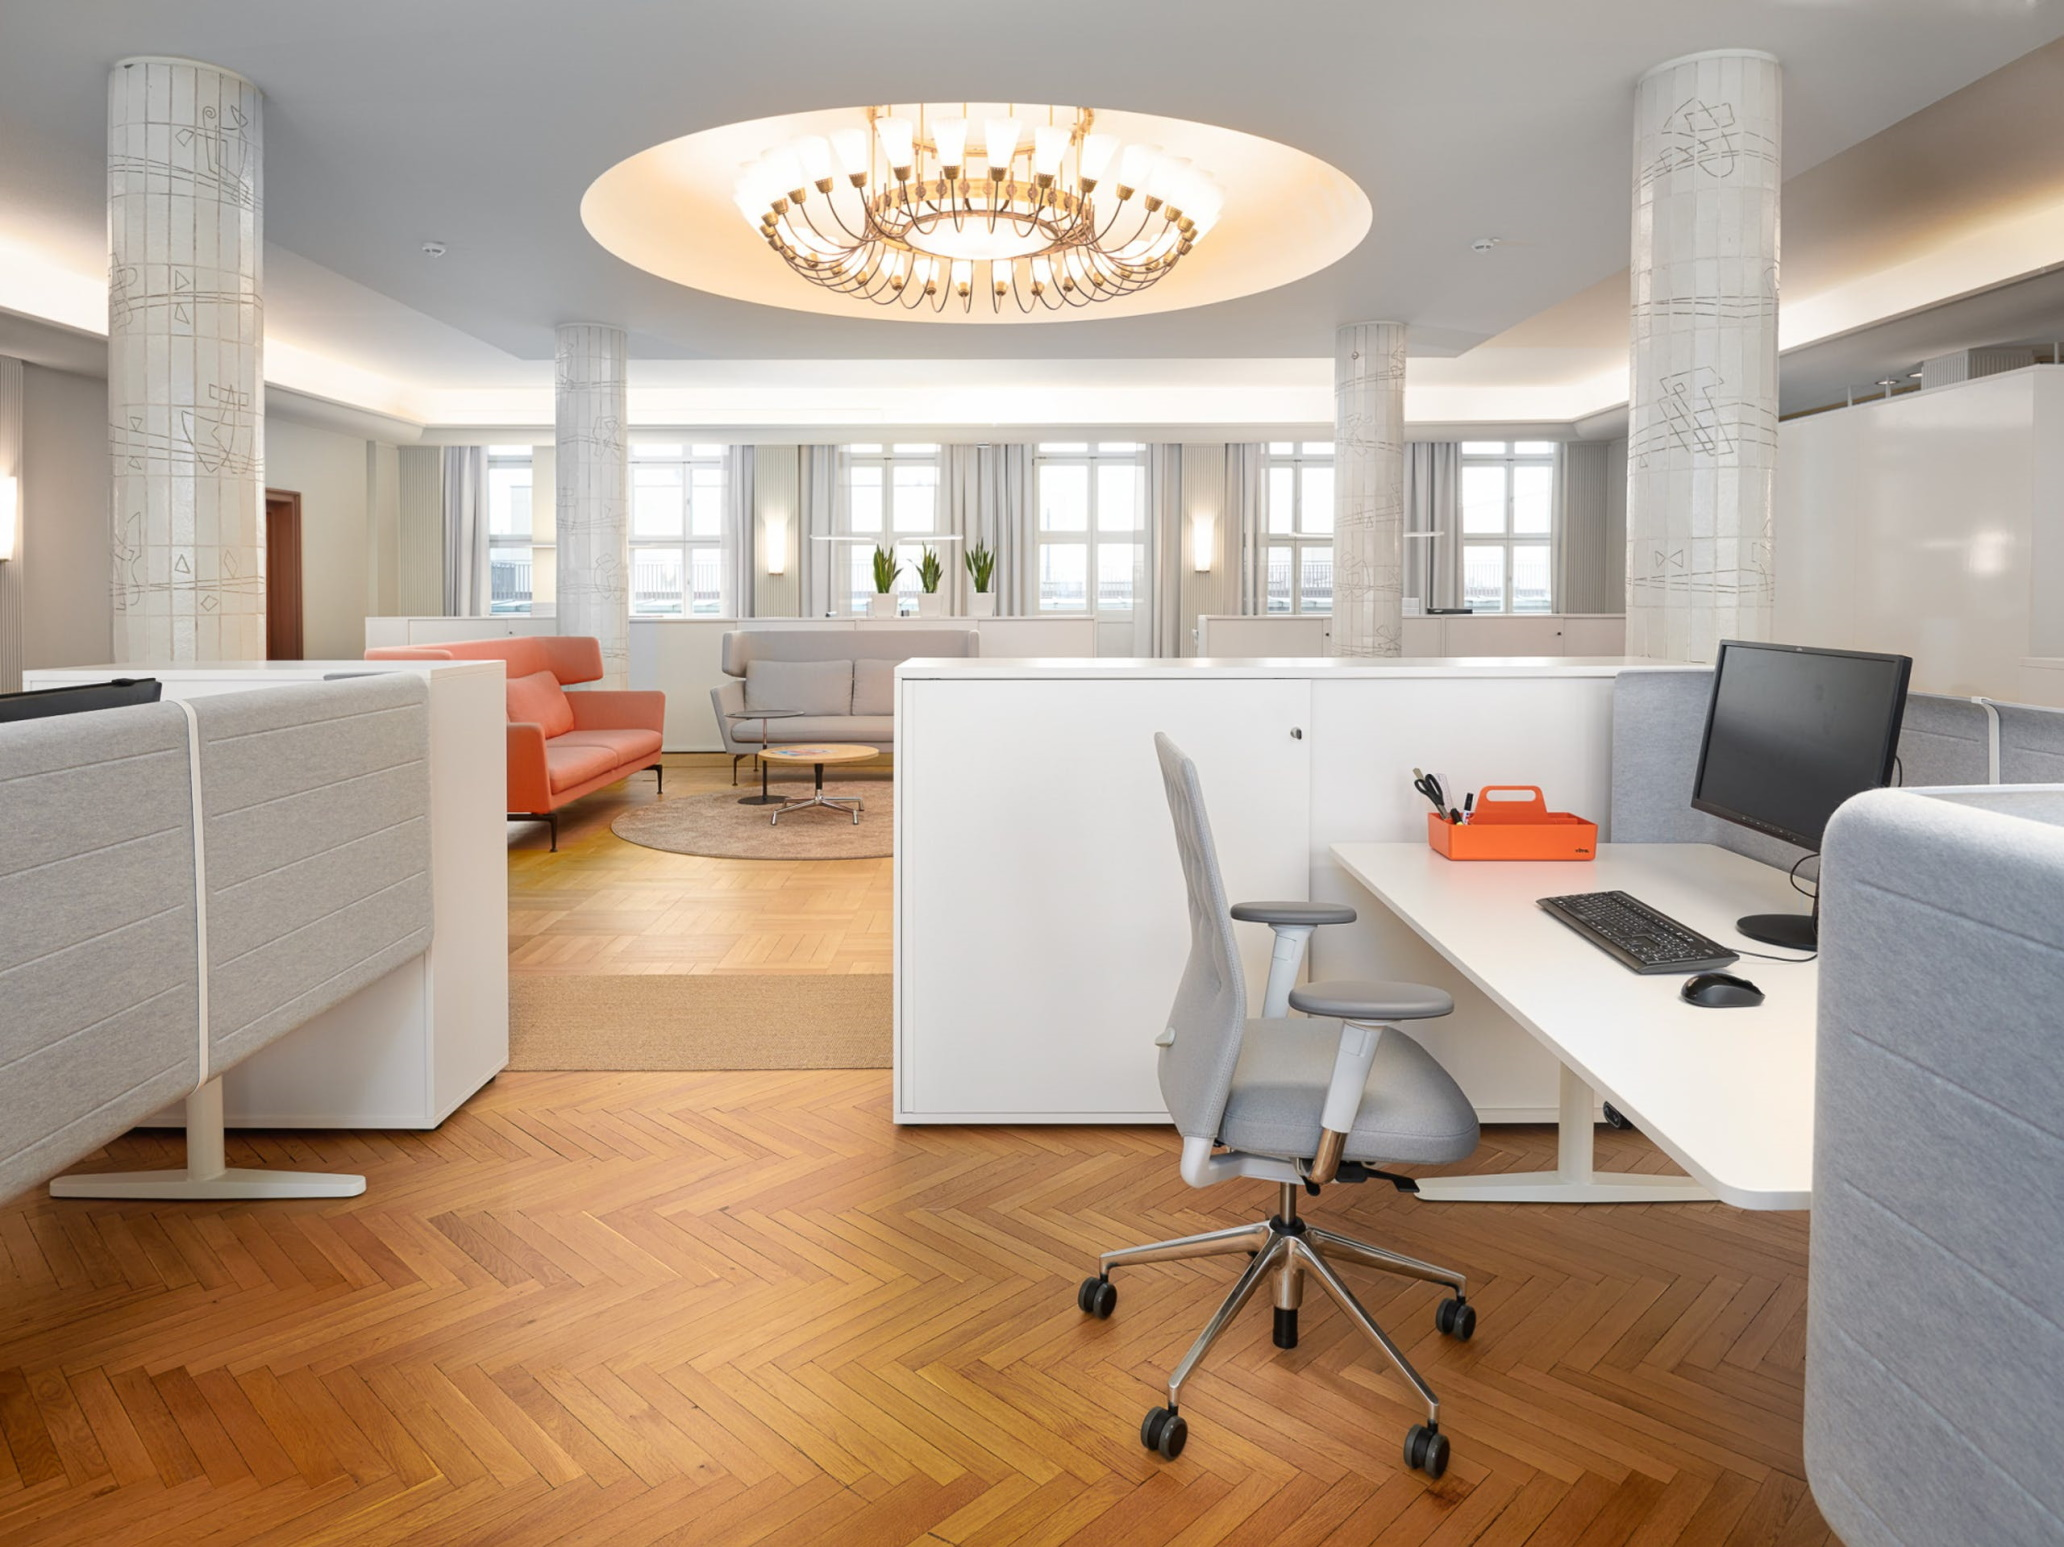 Redesign of the office space